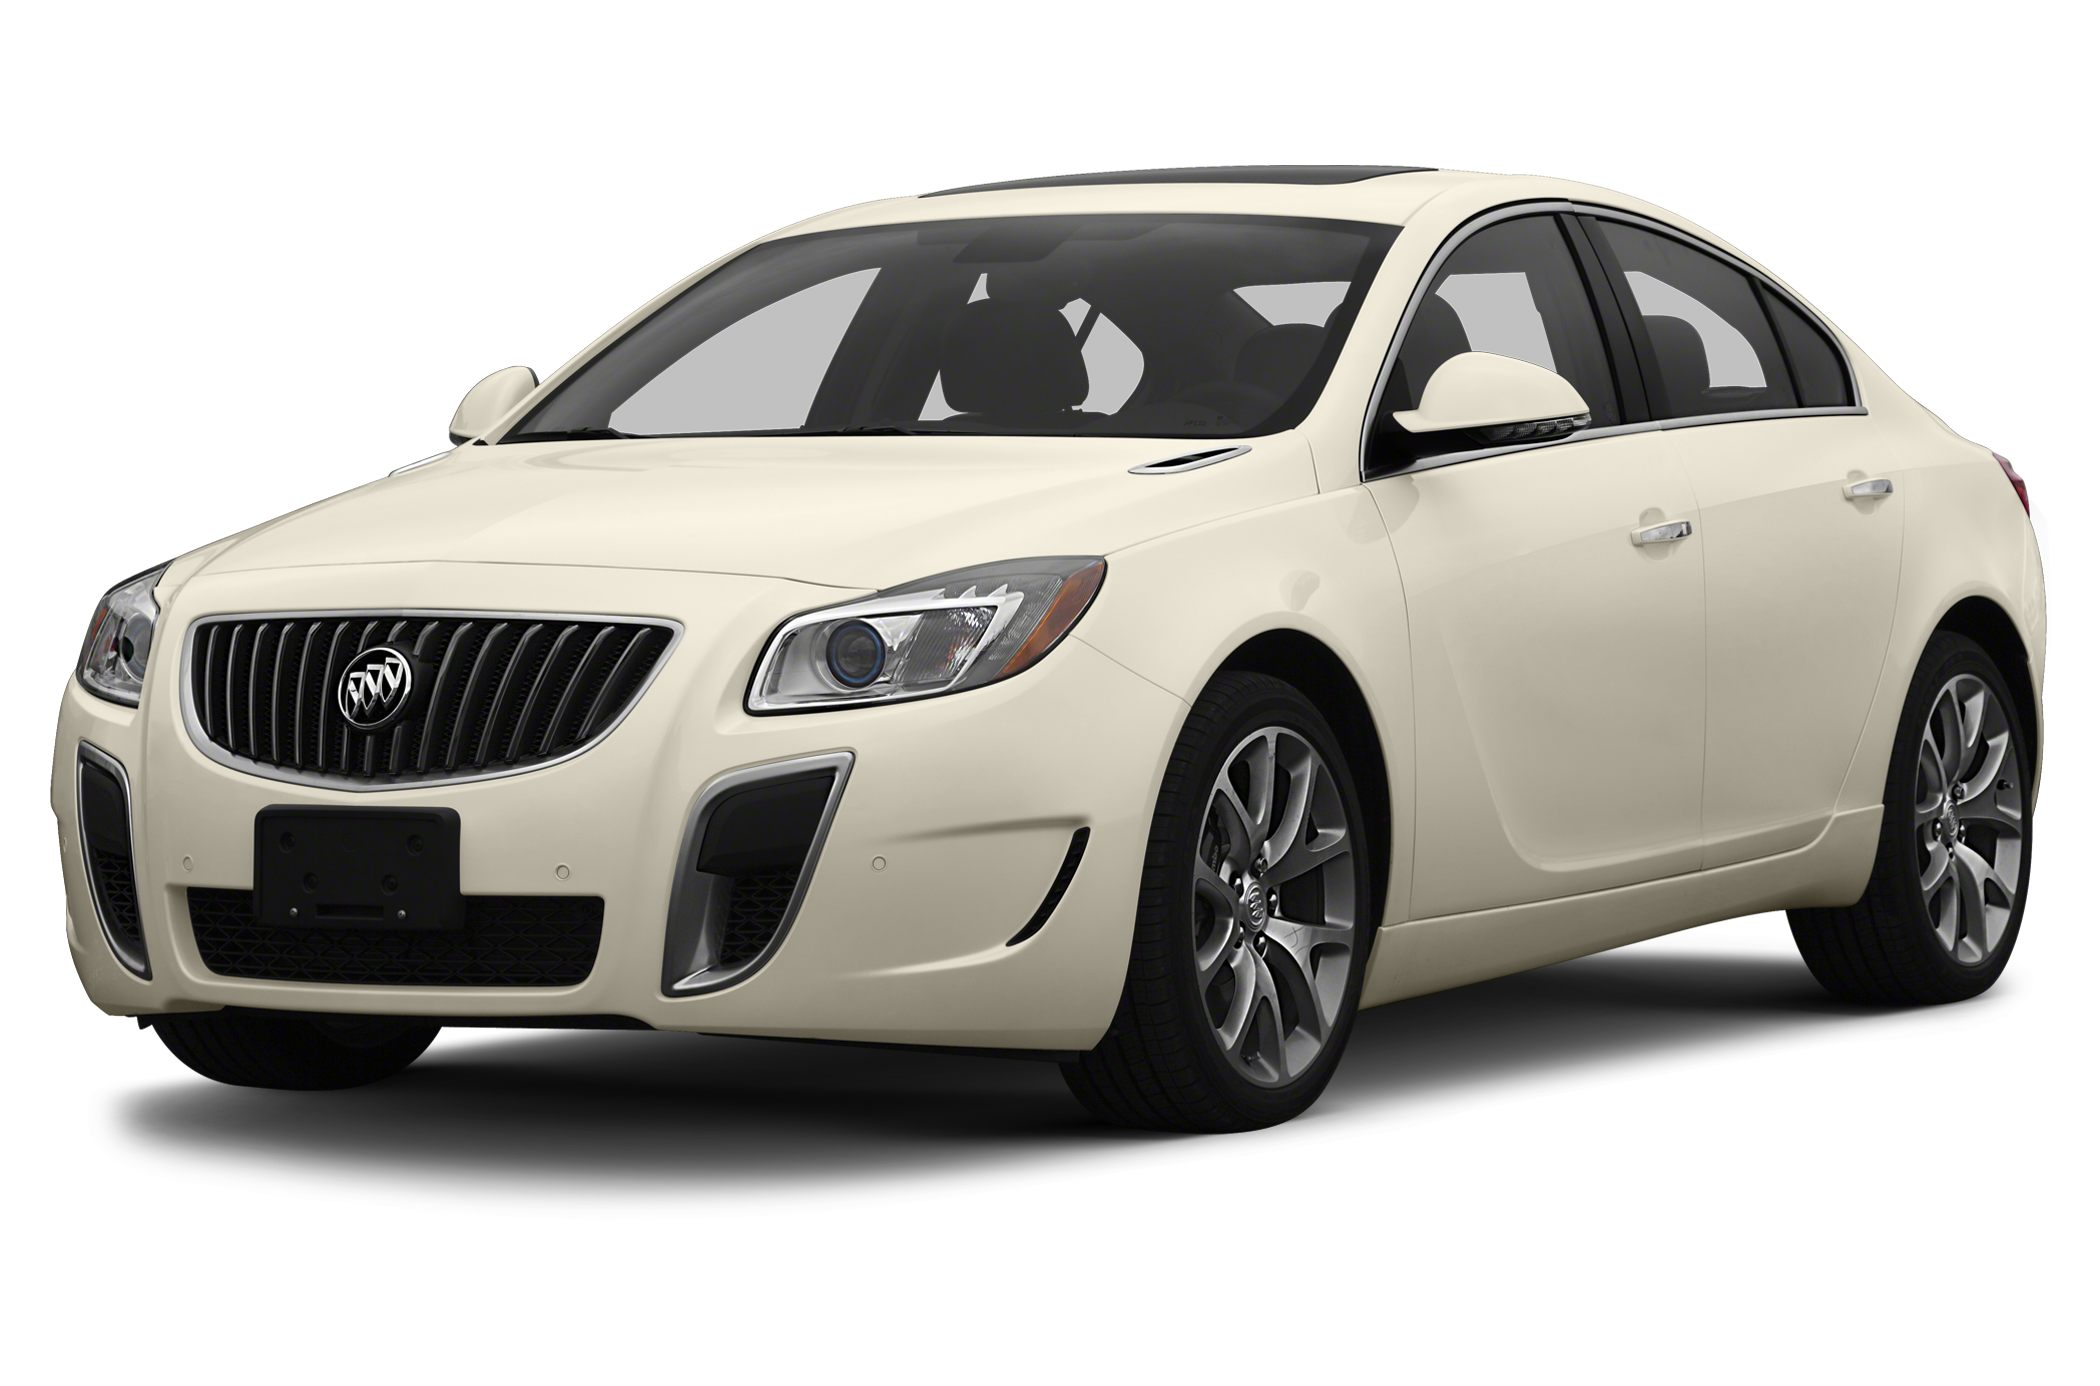 2013 Buick Regal GS Sedan for sale in Scottsbluff for $38,965 with 0 miles.